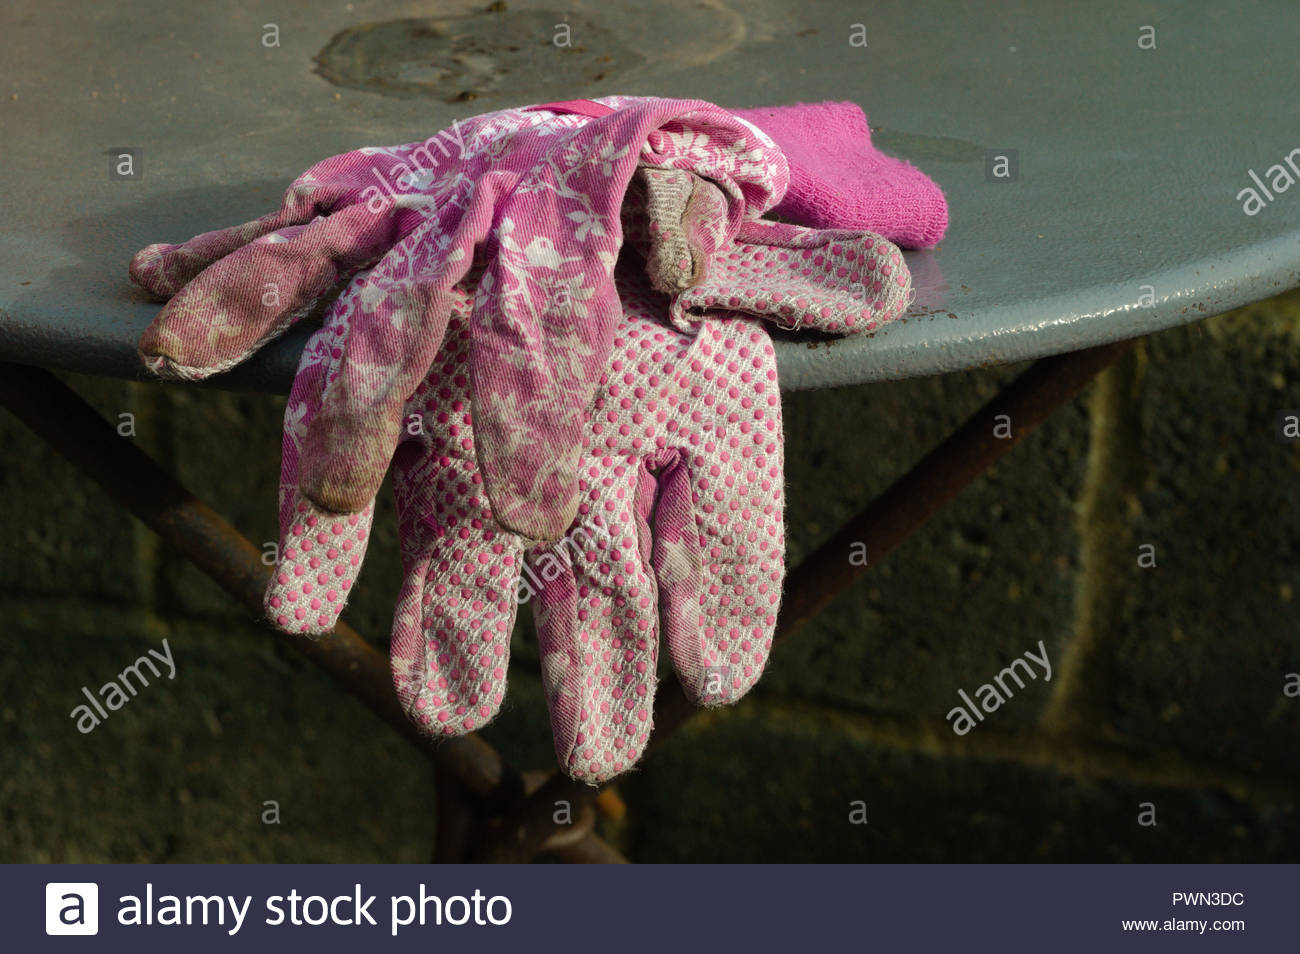 Dirty pink pair of gardening gloves draped over table edge - Stock Image